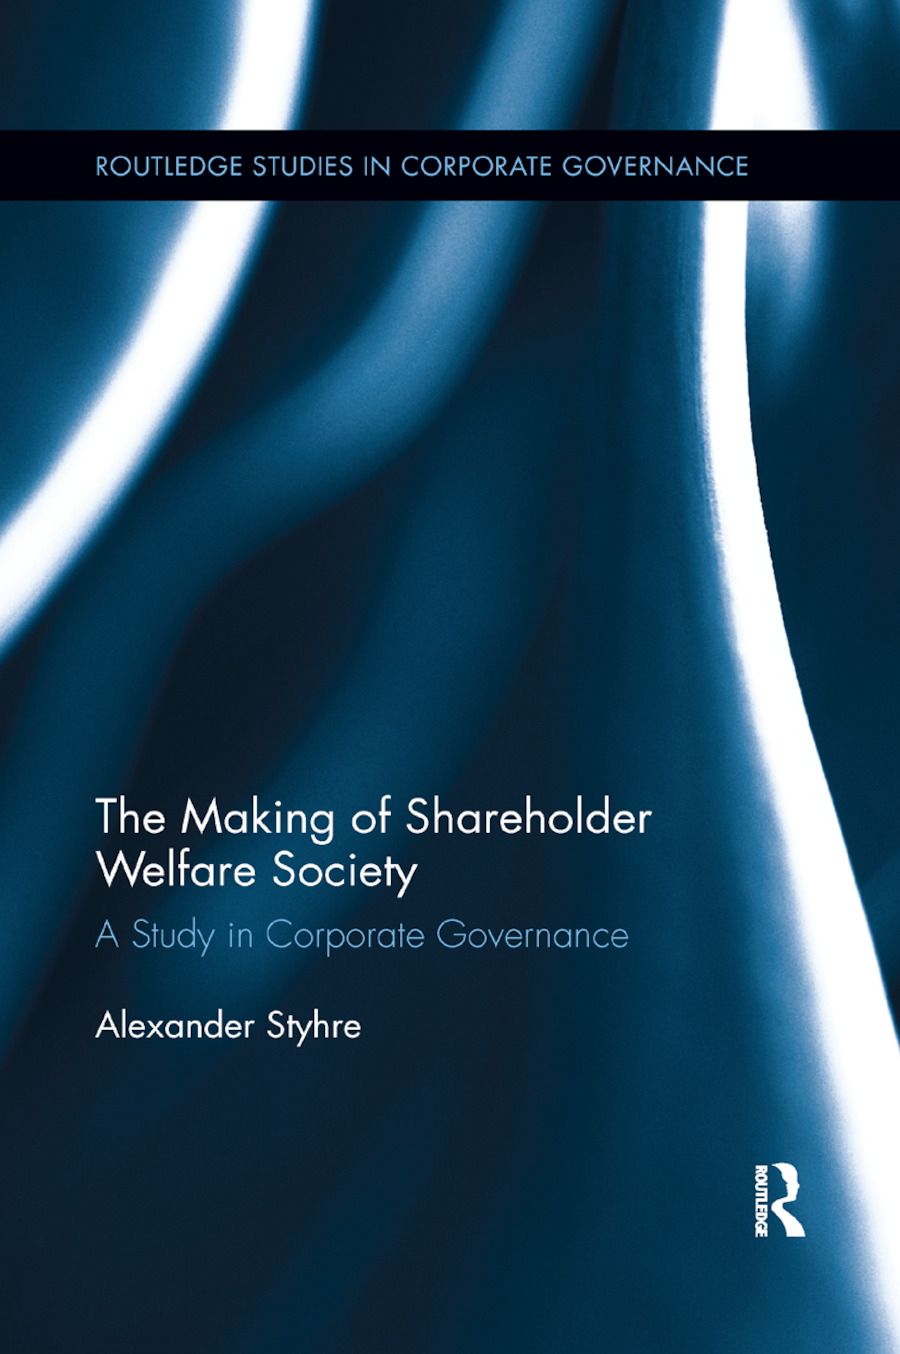 The Making of Shareholder Welfare Society: A Study in Corporate Governance book cover